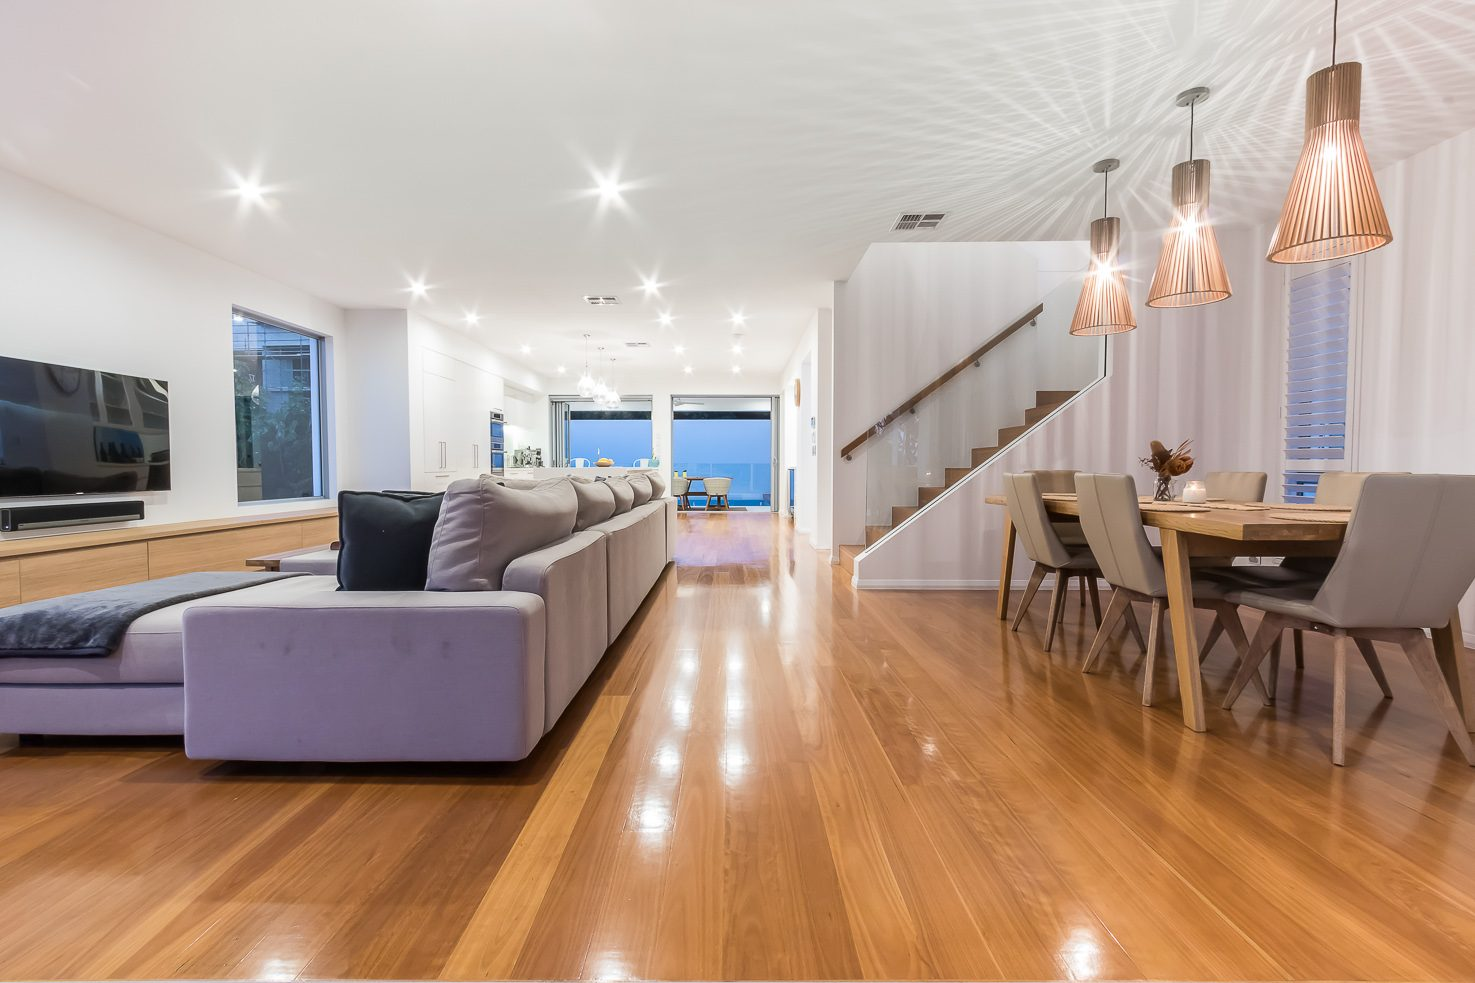 Brisbane Manly contemporary home by evermore looking through the main living area